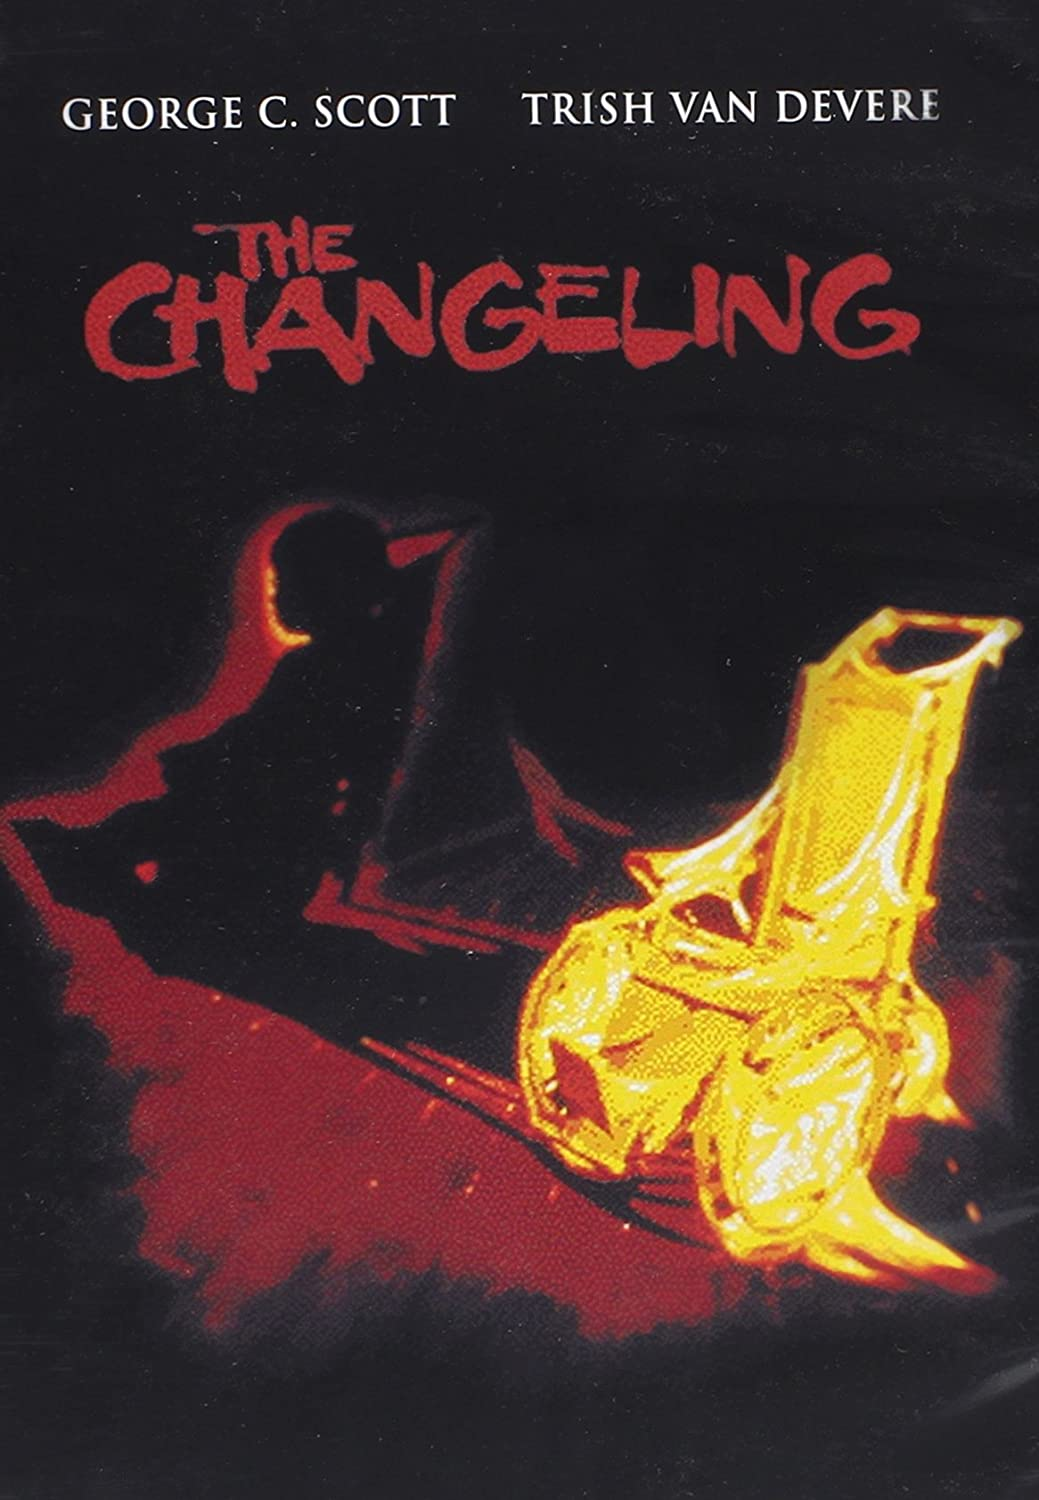 The Changeling (Widescreen) George C. Scott Trish Van Devere Melvyn Douglas HBO